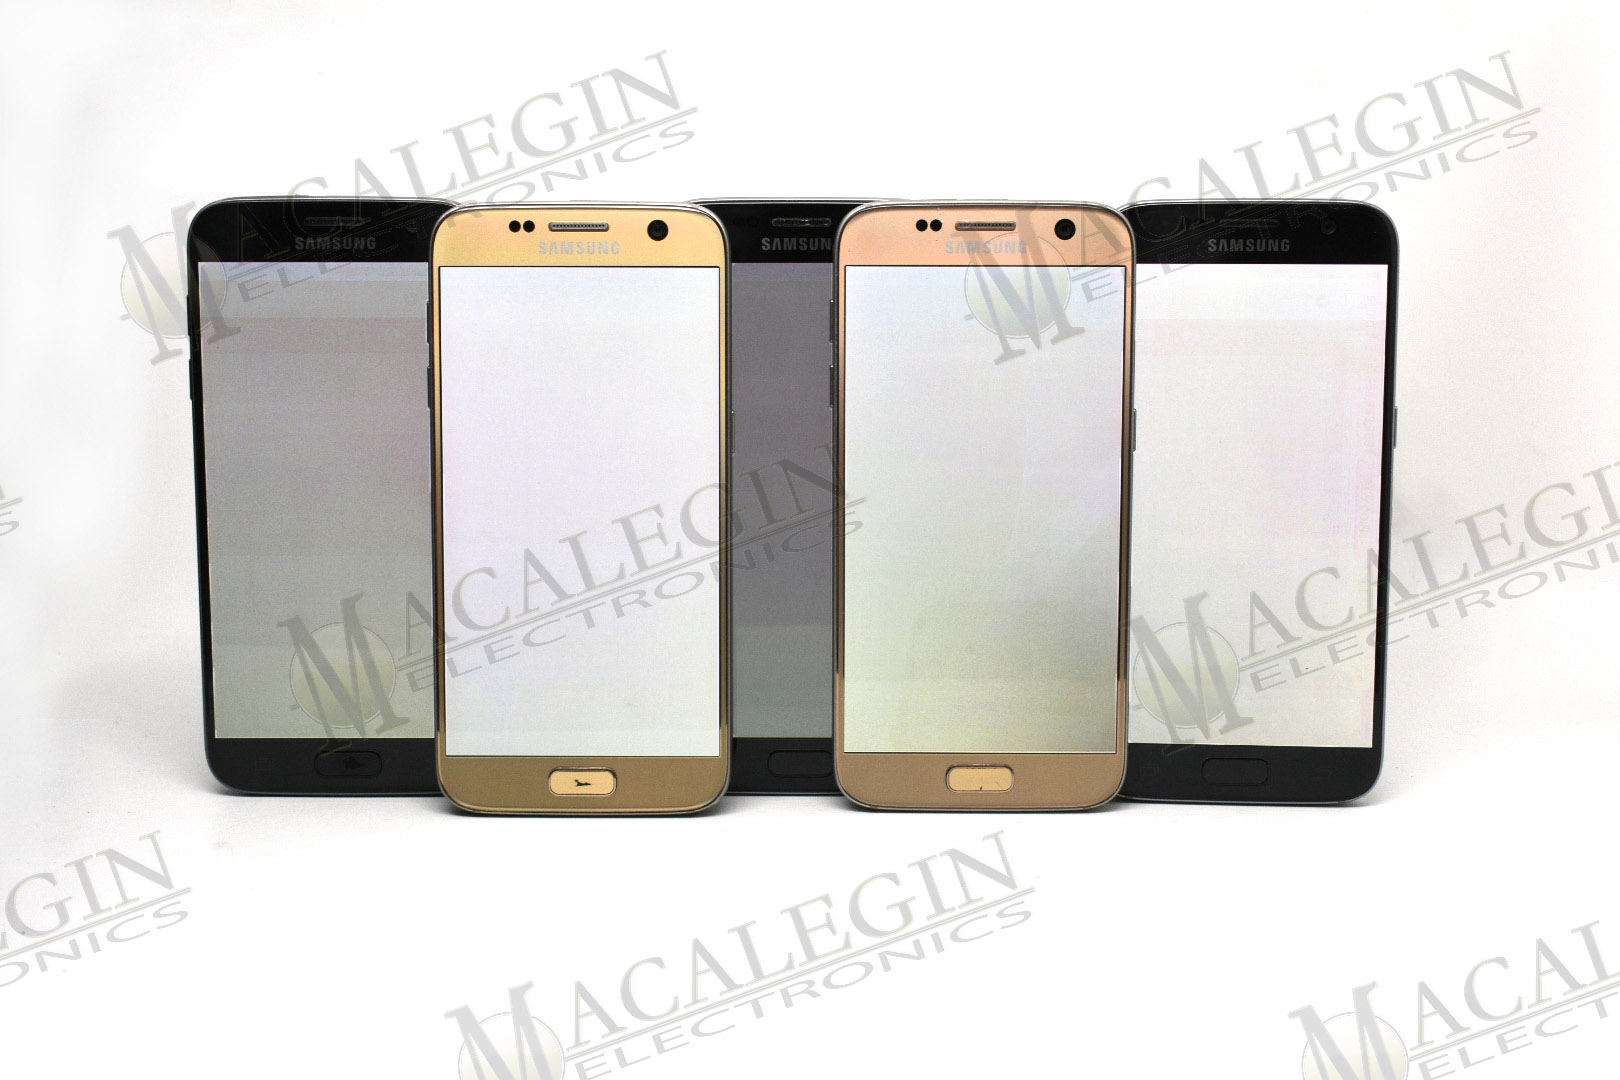 Used SAMSUNG SM-G930V GALAXY S7 VERIZON in PFL condition for sale from Macalegin Electronics at $83 a piece.